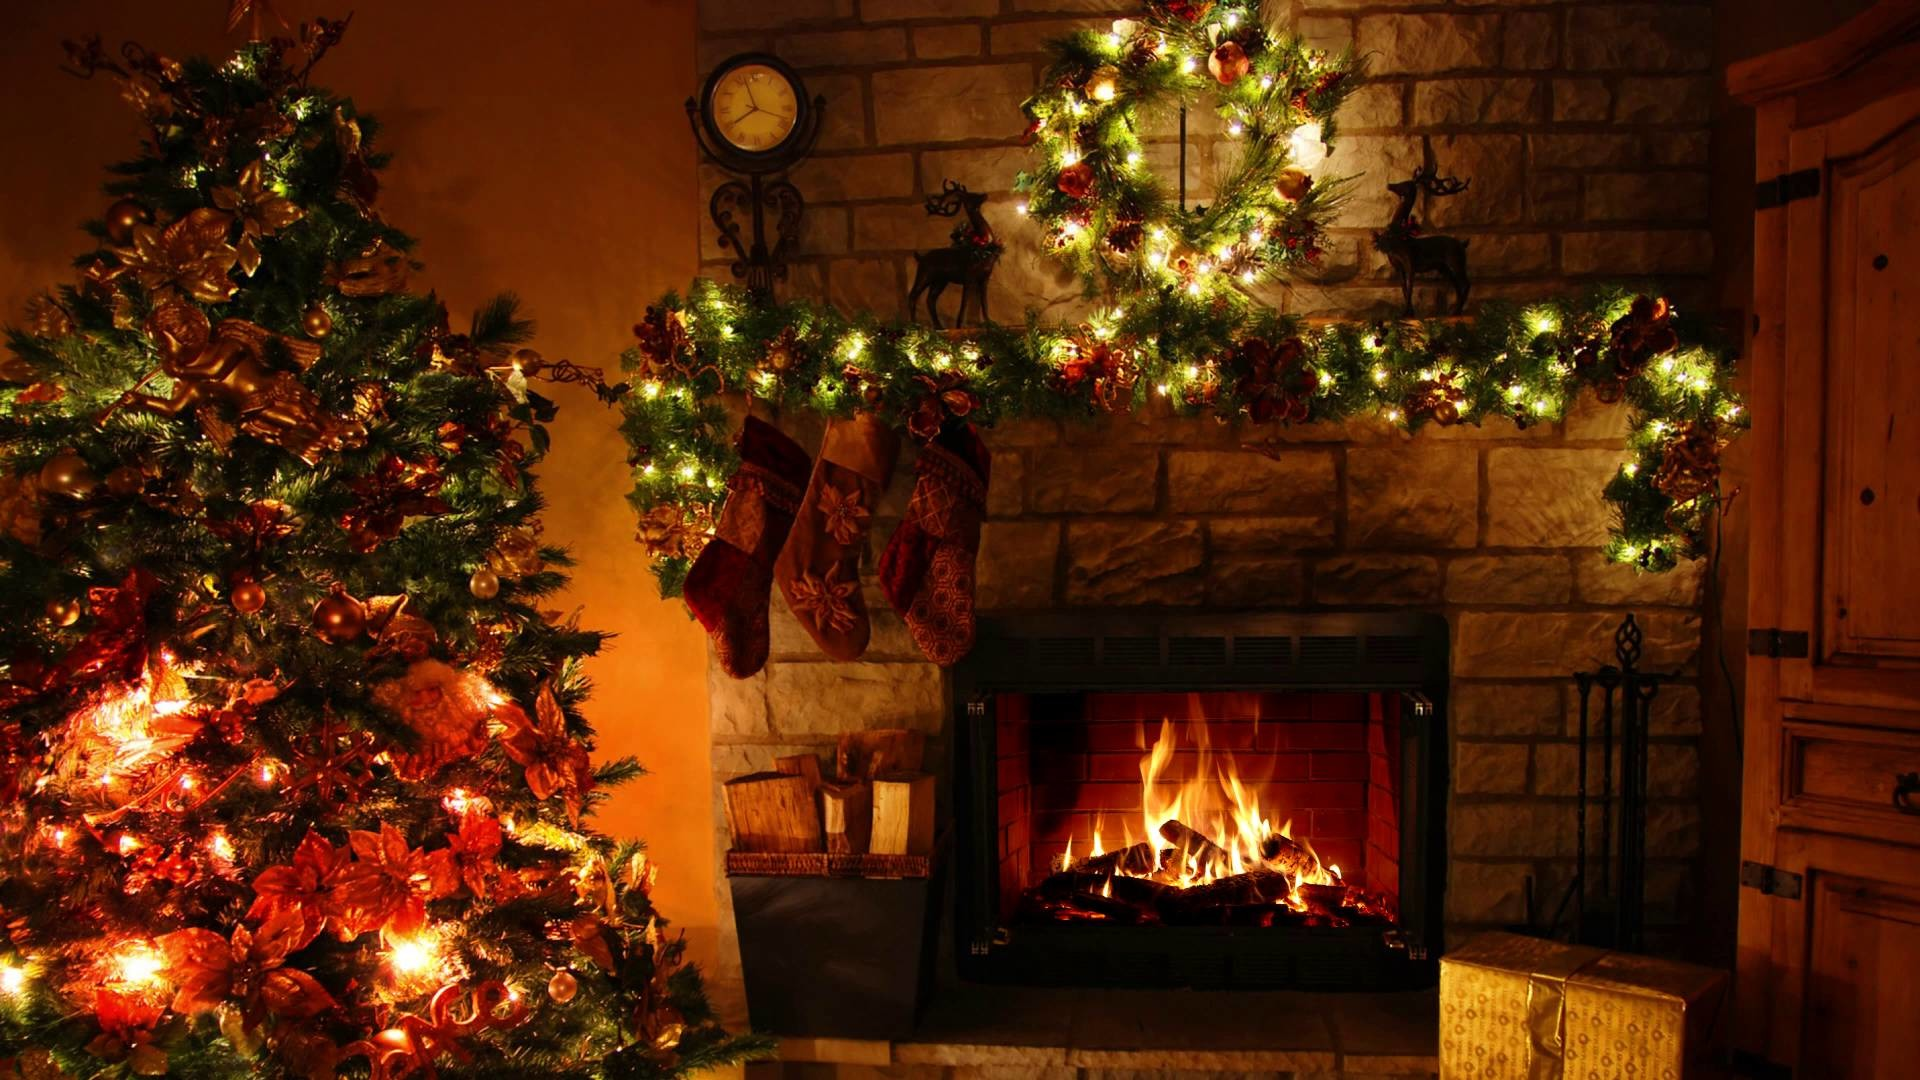 Christmas Fireplace Wallpaper ·① WallpaperTag